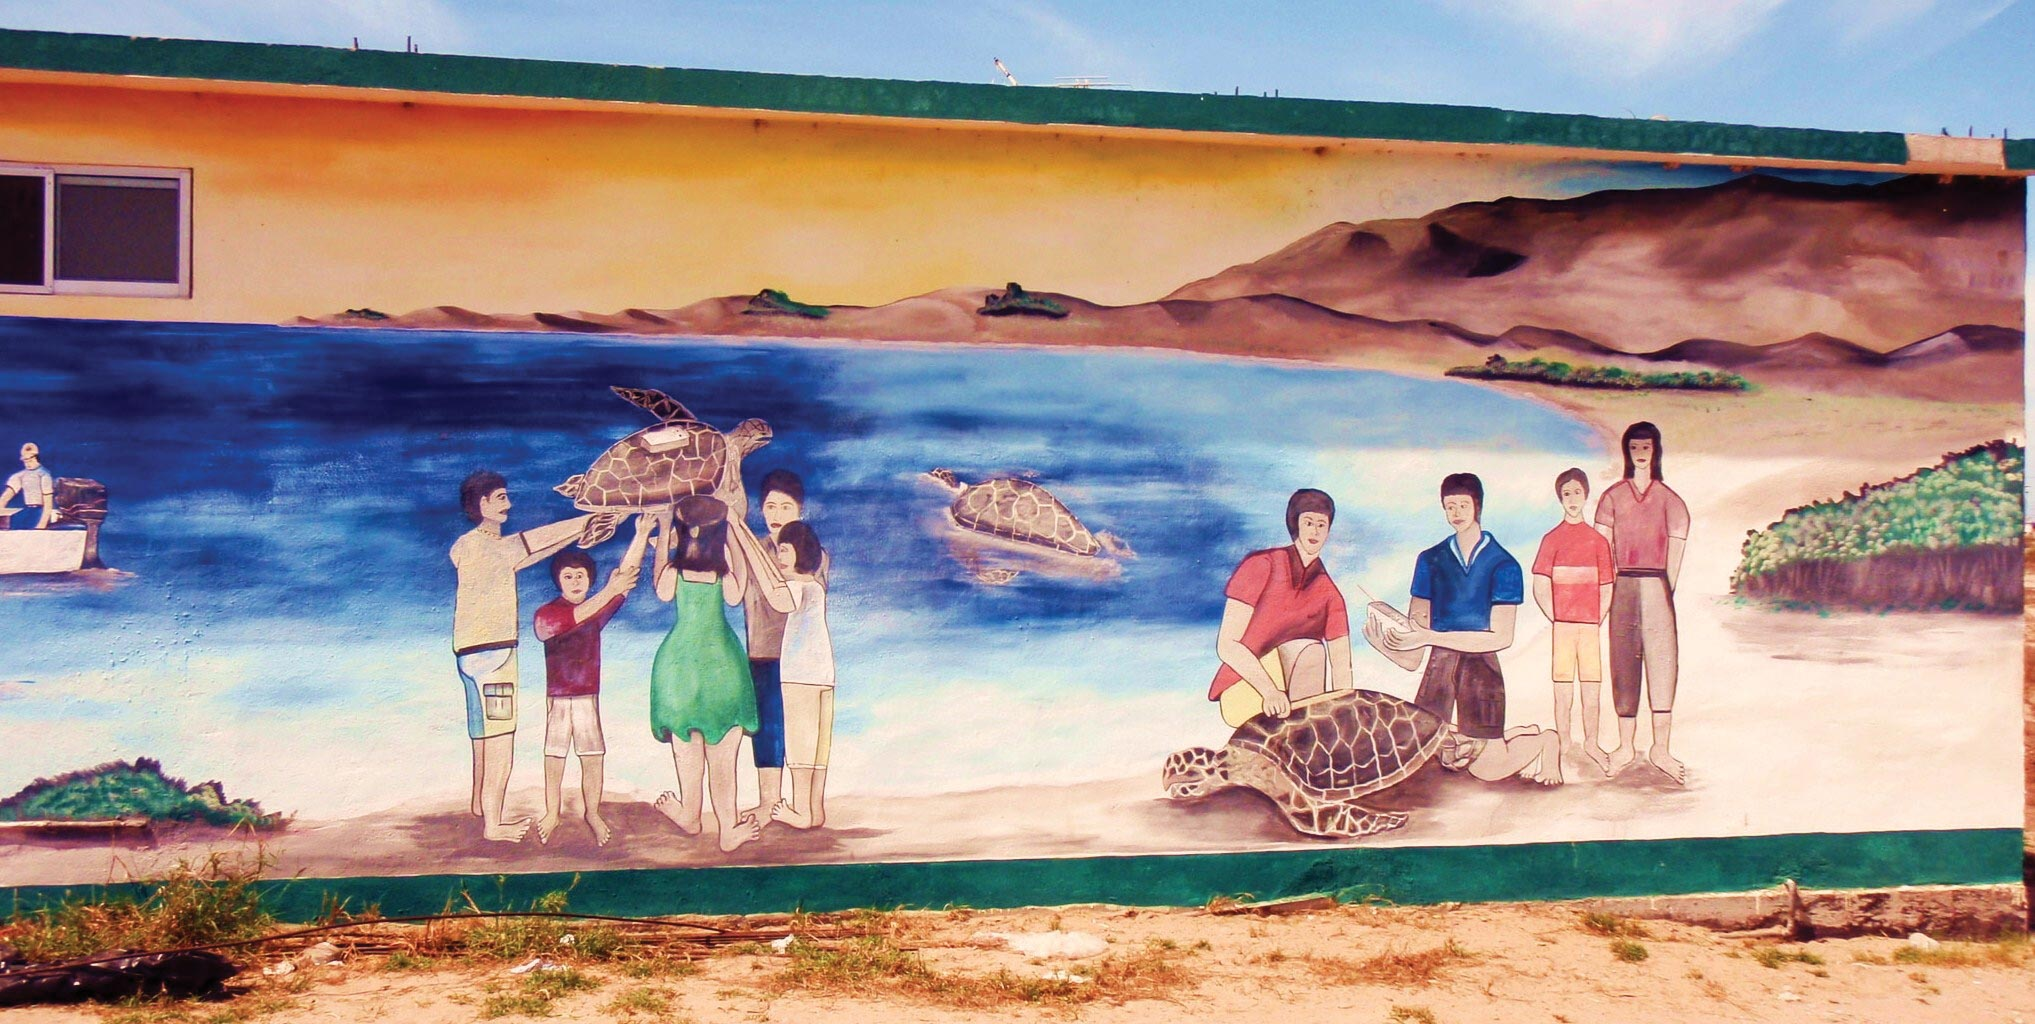 Painted by Marcos Aragon, this mural at the entrance to Puerto Adolfo López Mateos was designed by ProCaguama and Grupo Tortuguero to celebrate the area's local loggerhead population and the potential for sea turtle–based ecotourism. © Andrew J. Schneller